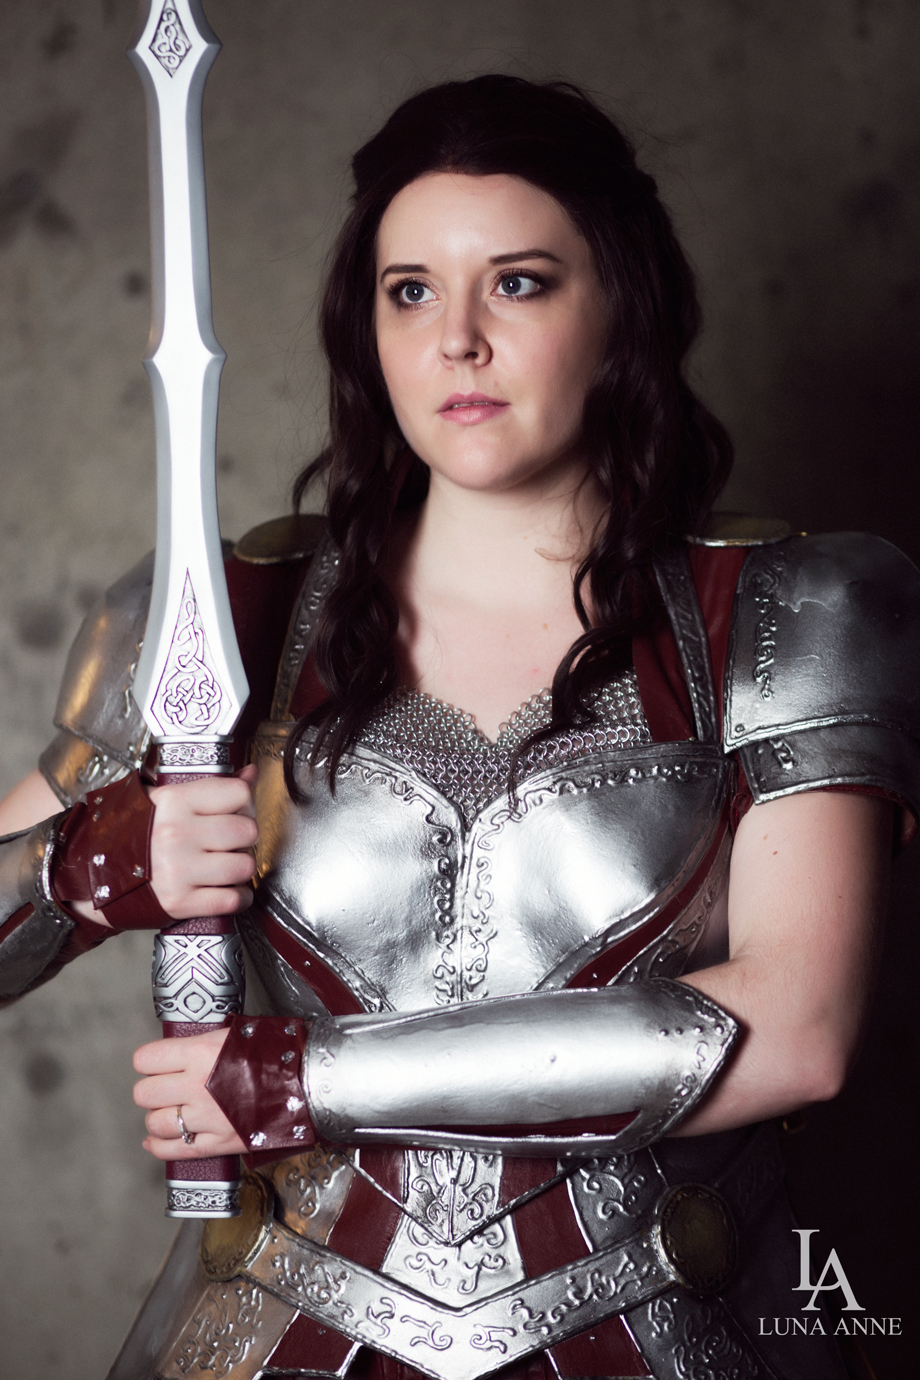 WV Seattle CosPlay Sif Thor Comic Con Emerald City (8 of 20).jpg